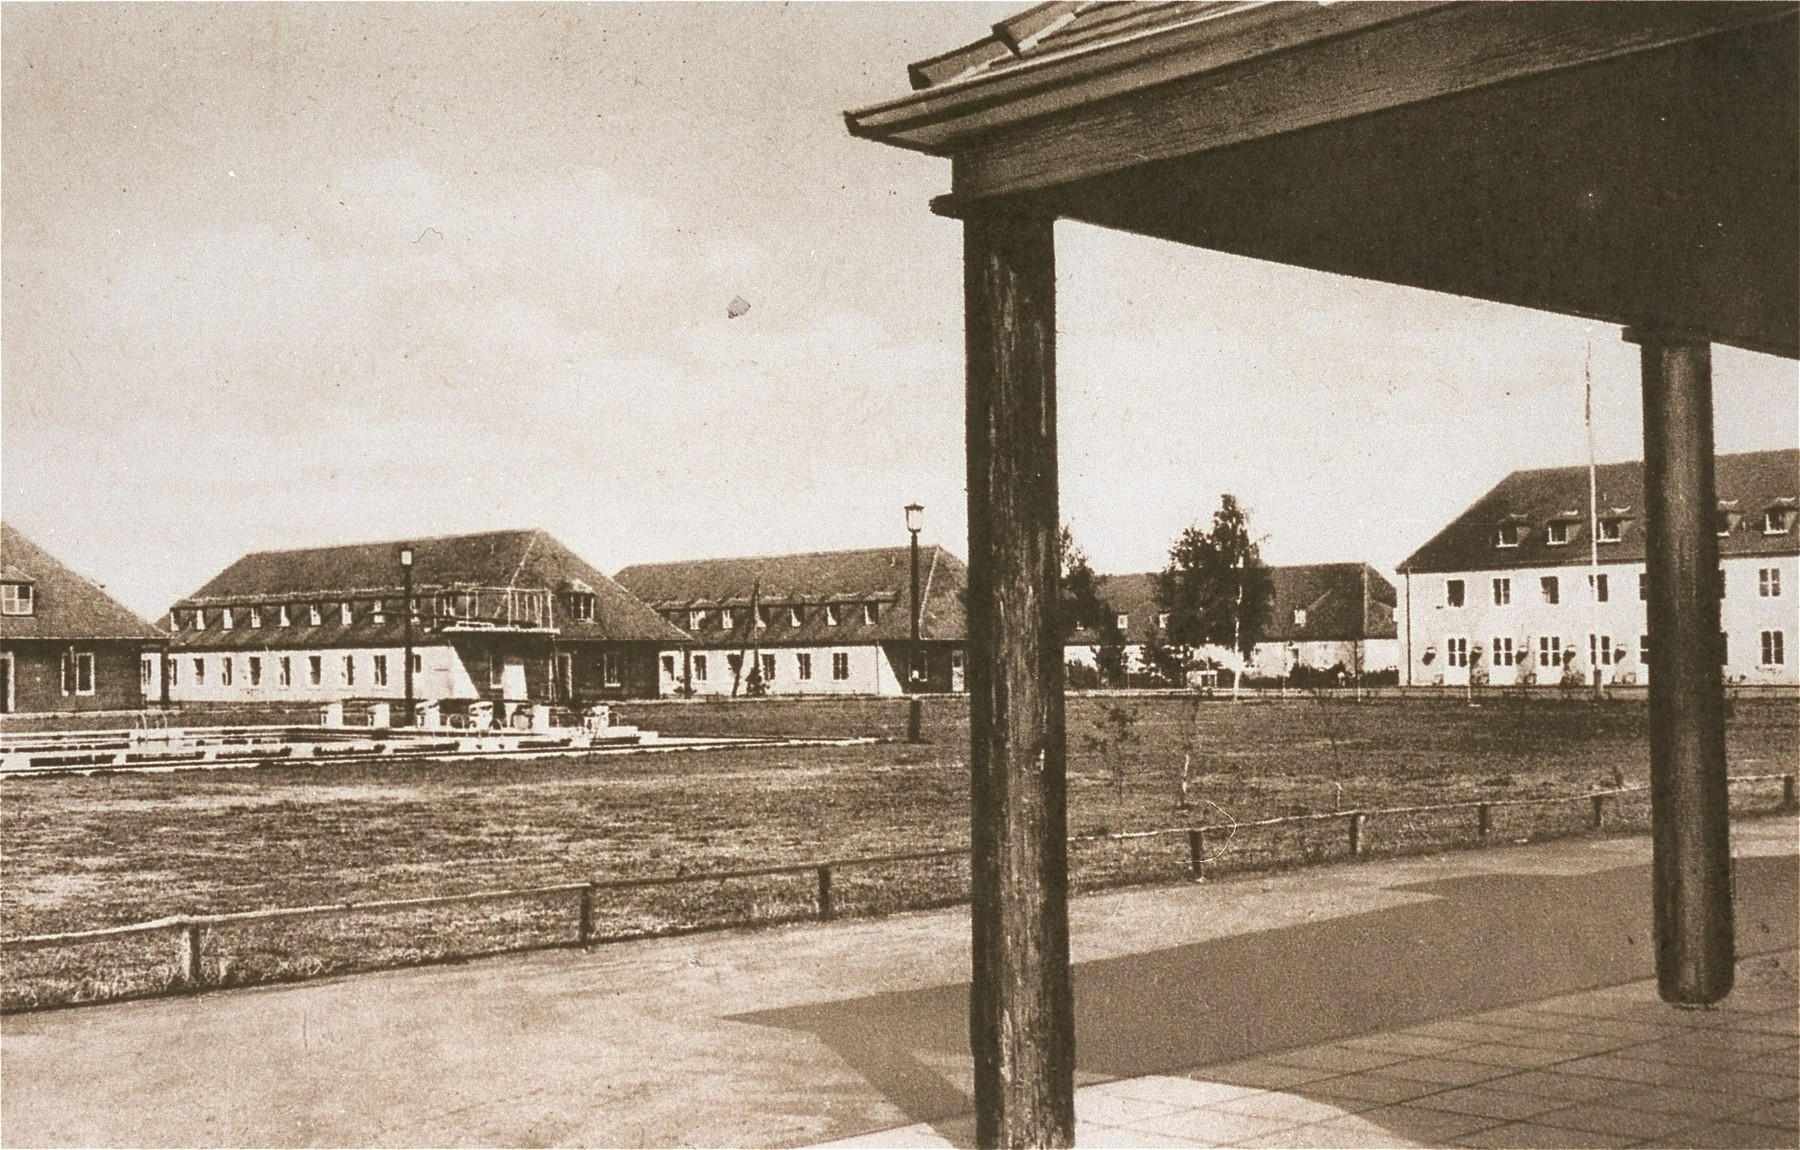 View of the Hitler Youth training center in Braunschweig where Solly Perel spent three years in hiding during World War II.